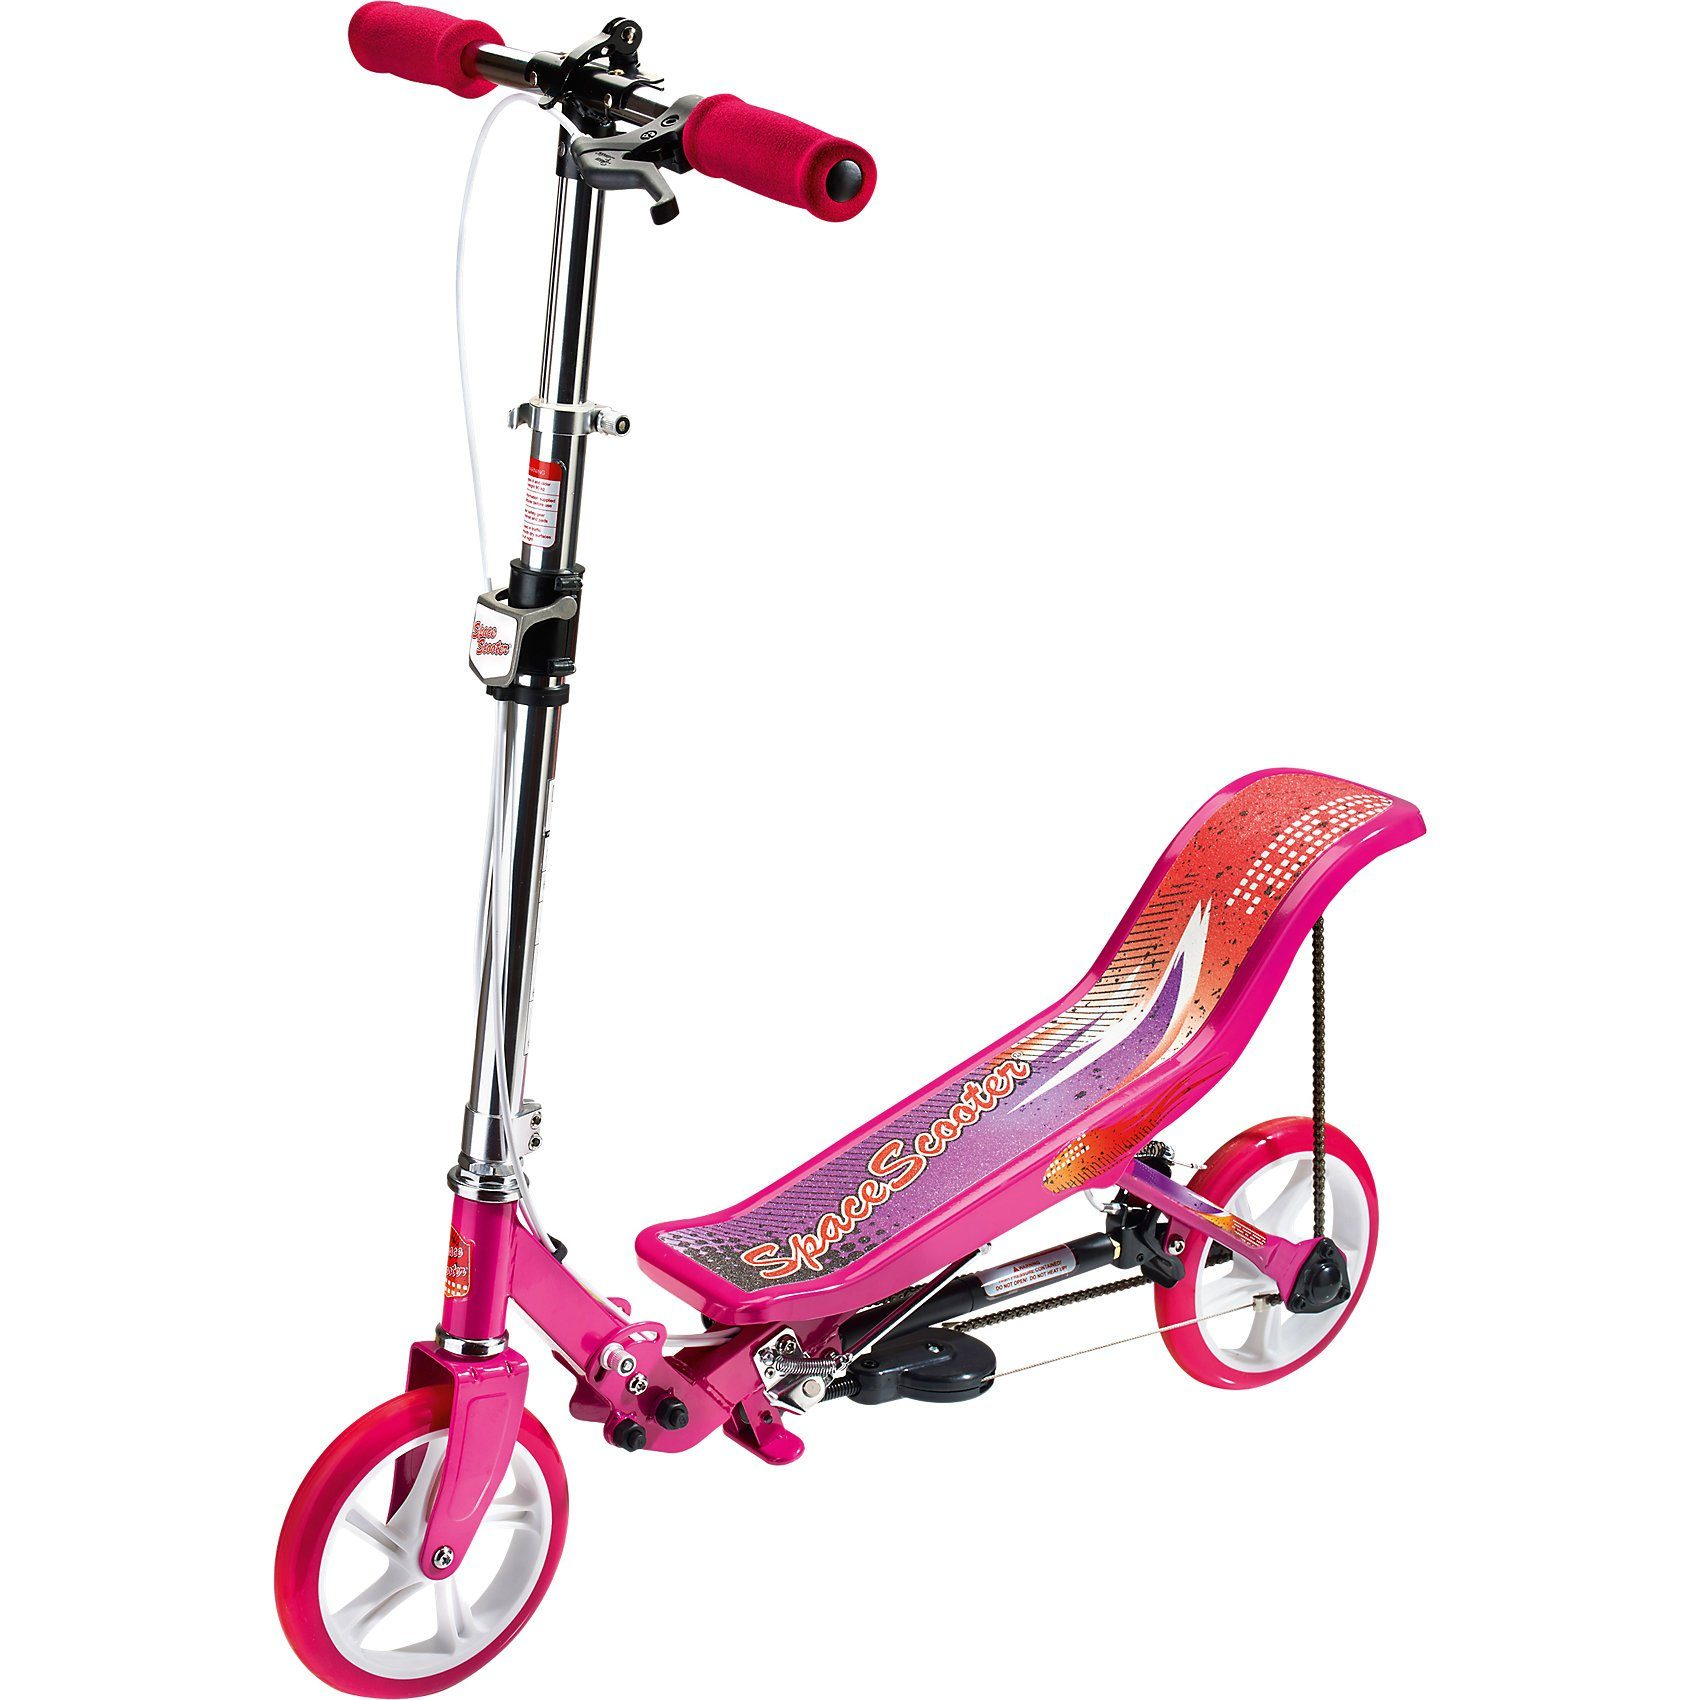 Space Scooter X 580, pink